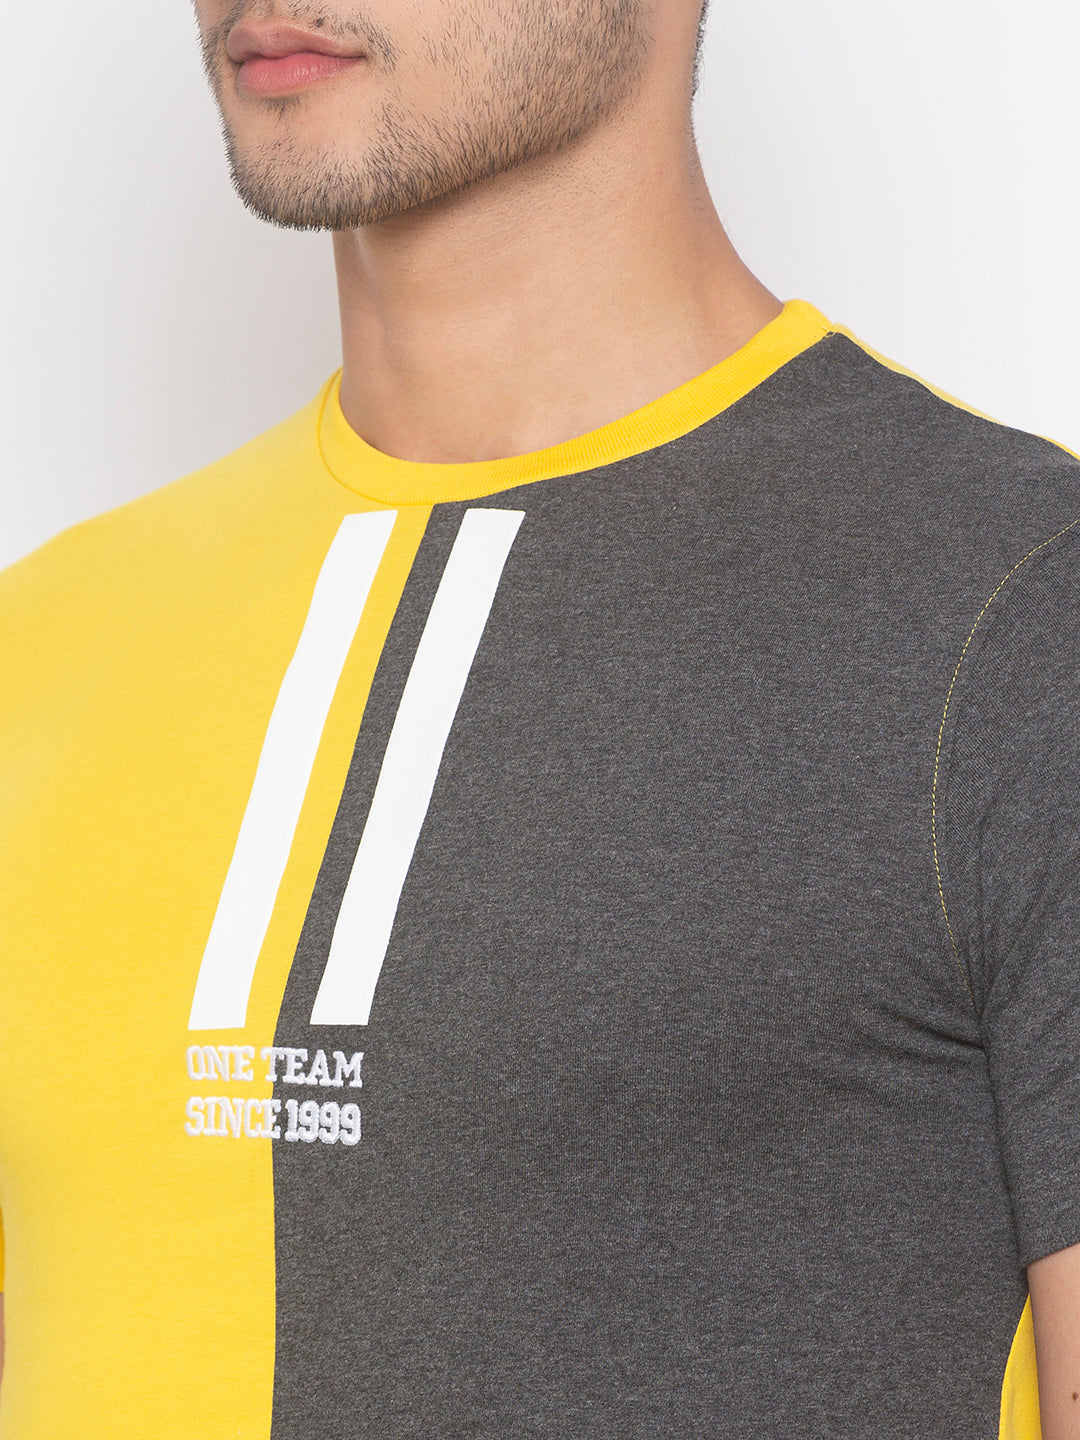 Globus Yellow & Grey Color Block T-Shirt-5